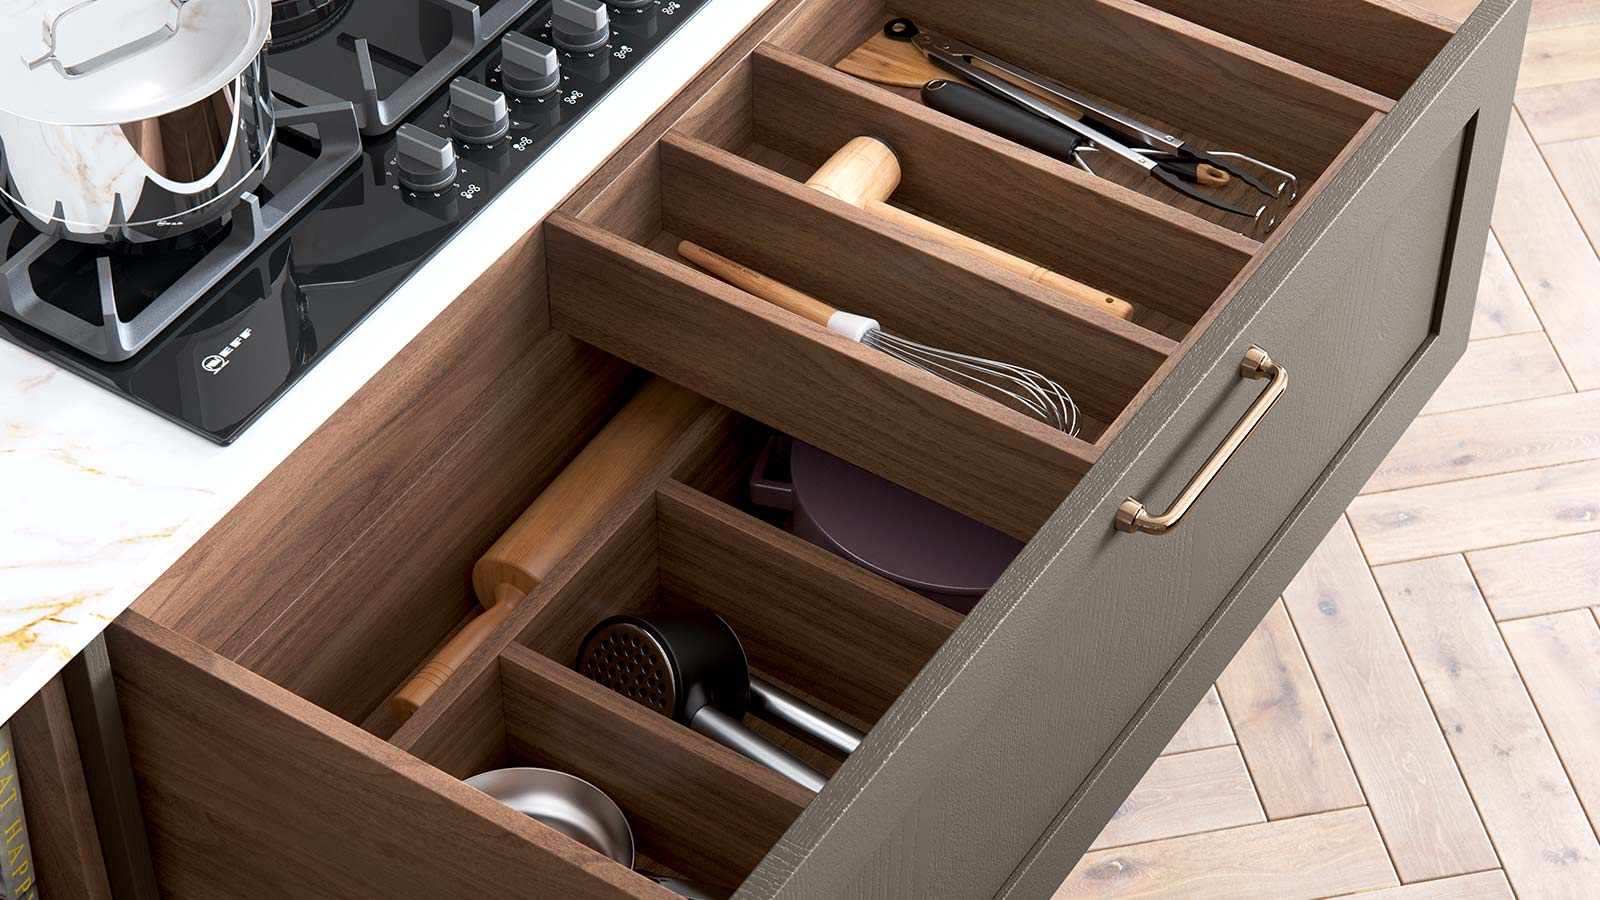 Classic kitchen cutlery drawer in Tuscan Walnut